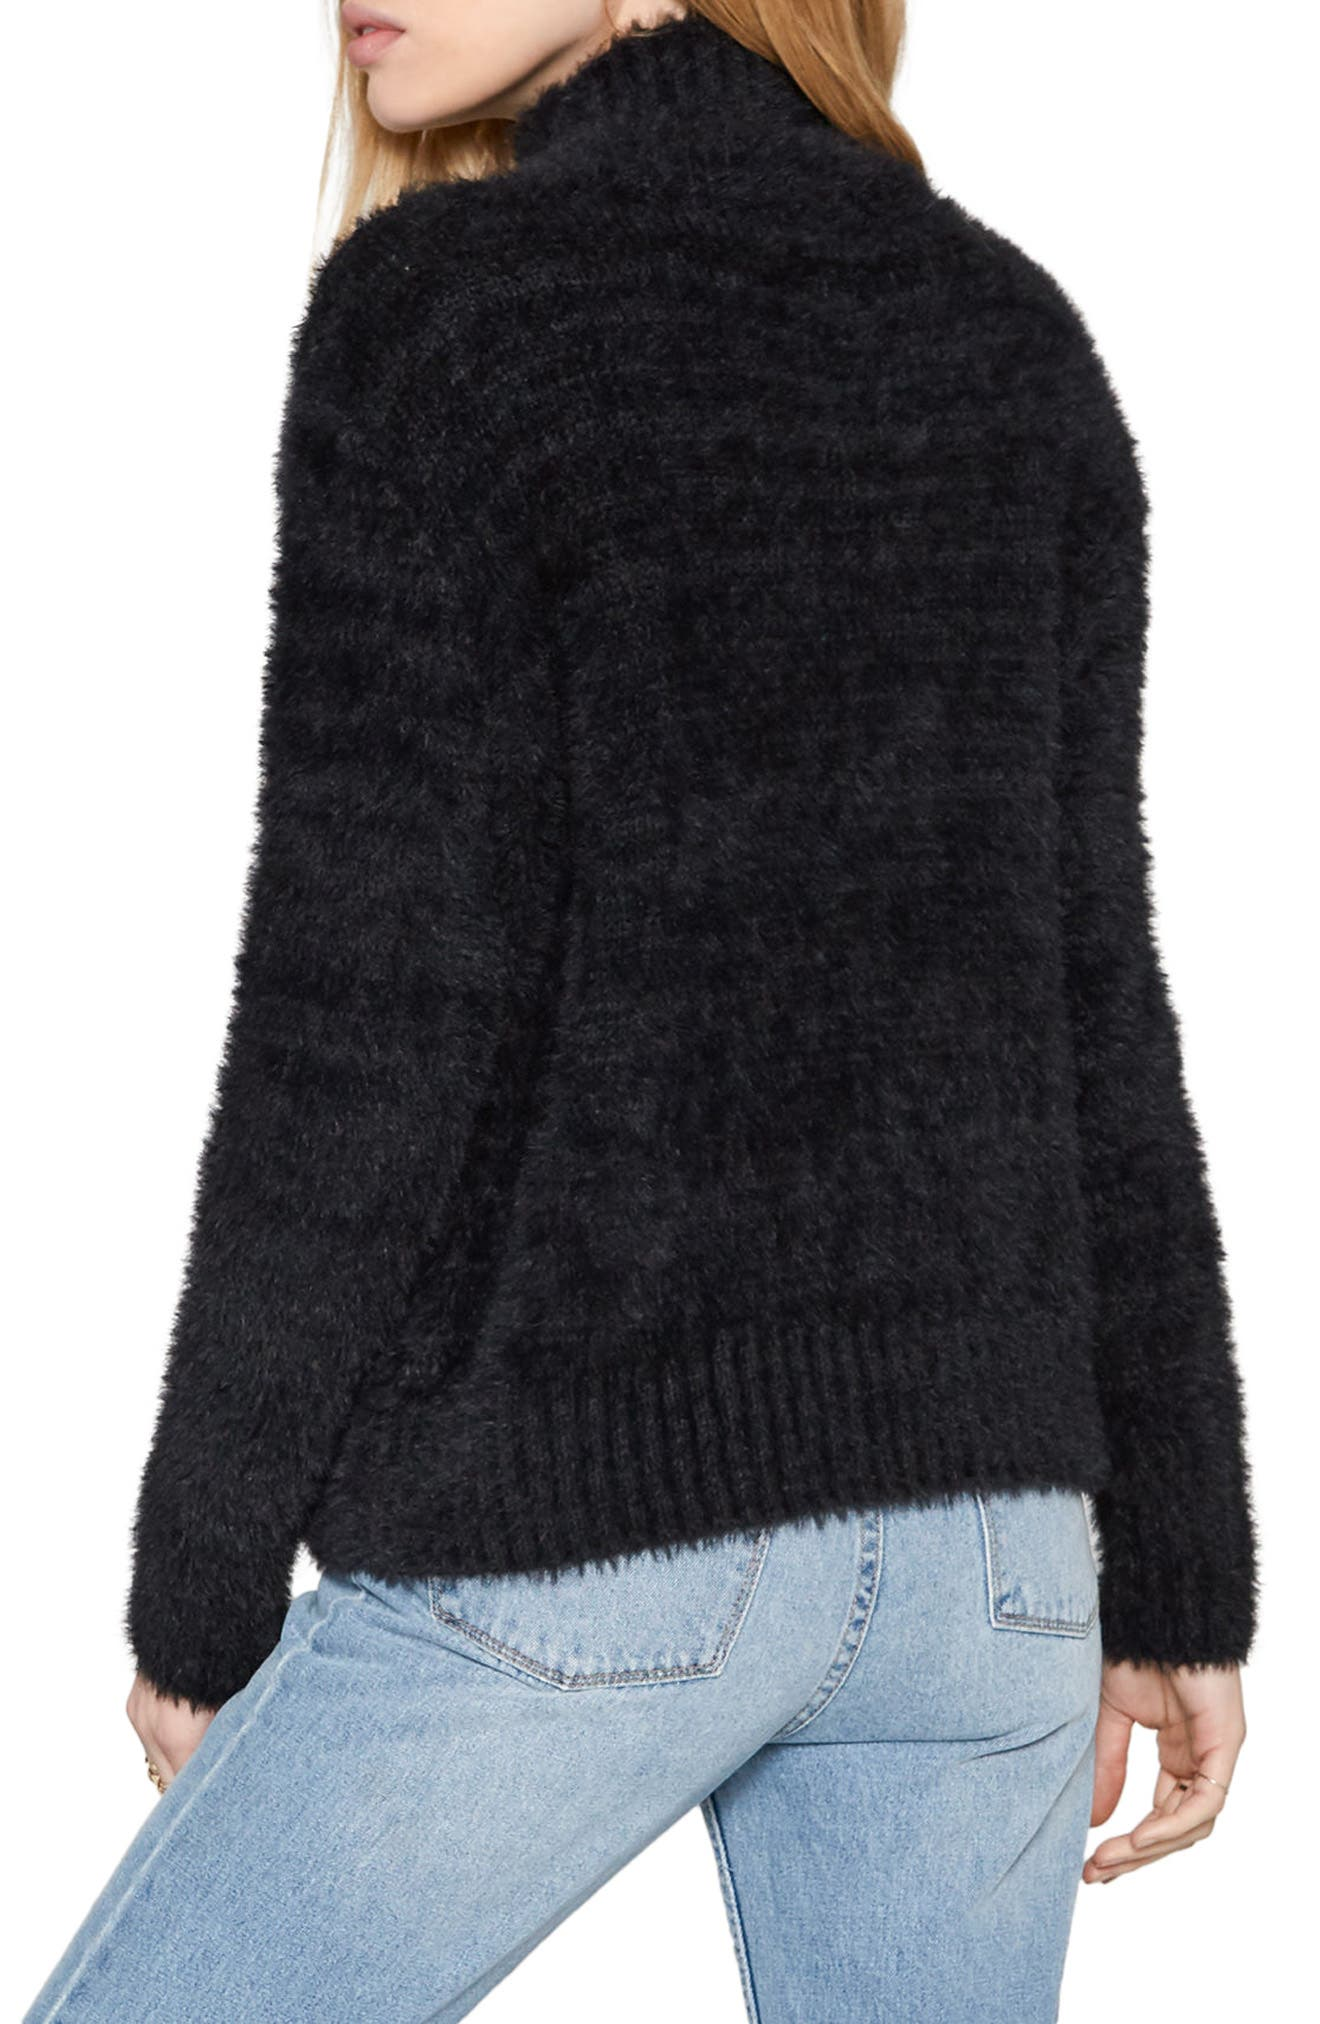 Cool Winds Cable Knit Sweater,                             Alternate thumbnail 3, color,